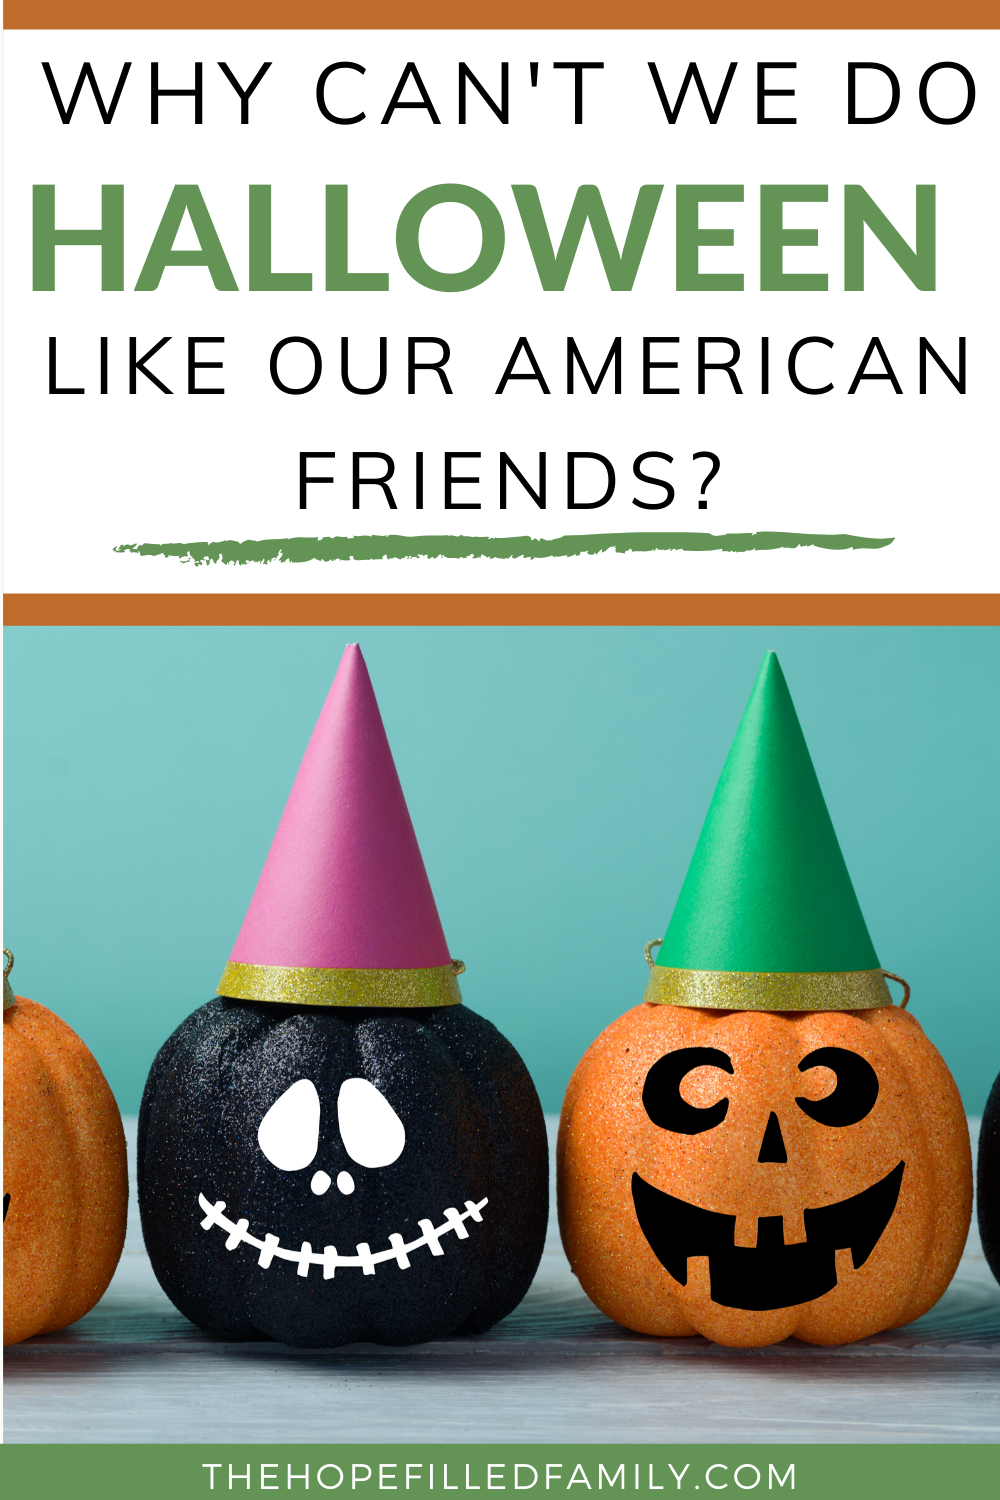 Can we celebrate Halloween as Christians in a fun way?